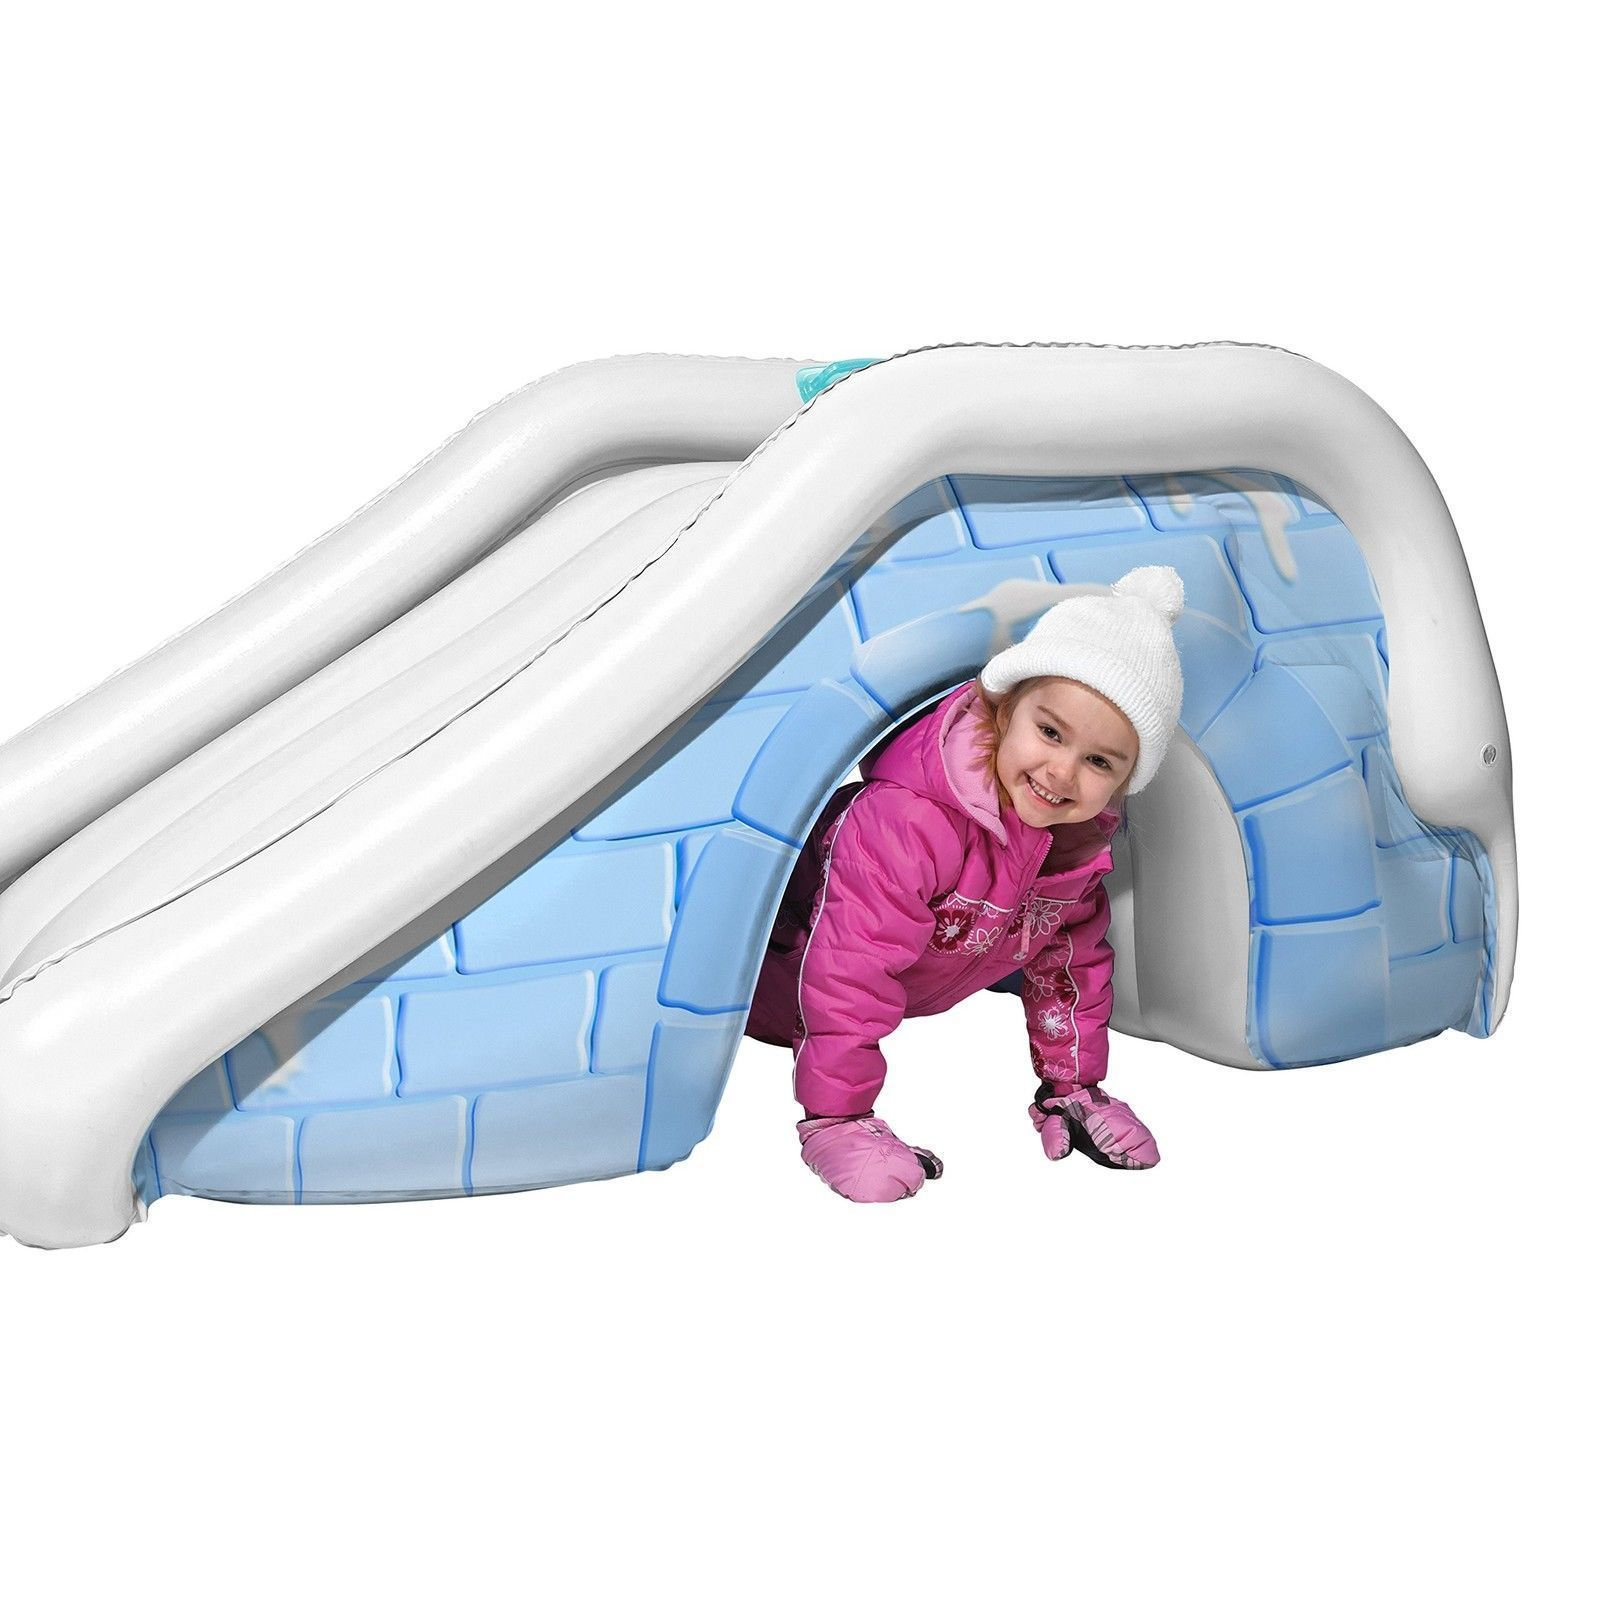 NEW! Kids Fun Outdoor Yard Igloo Snow Slide and Play Tunnel US